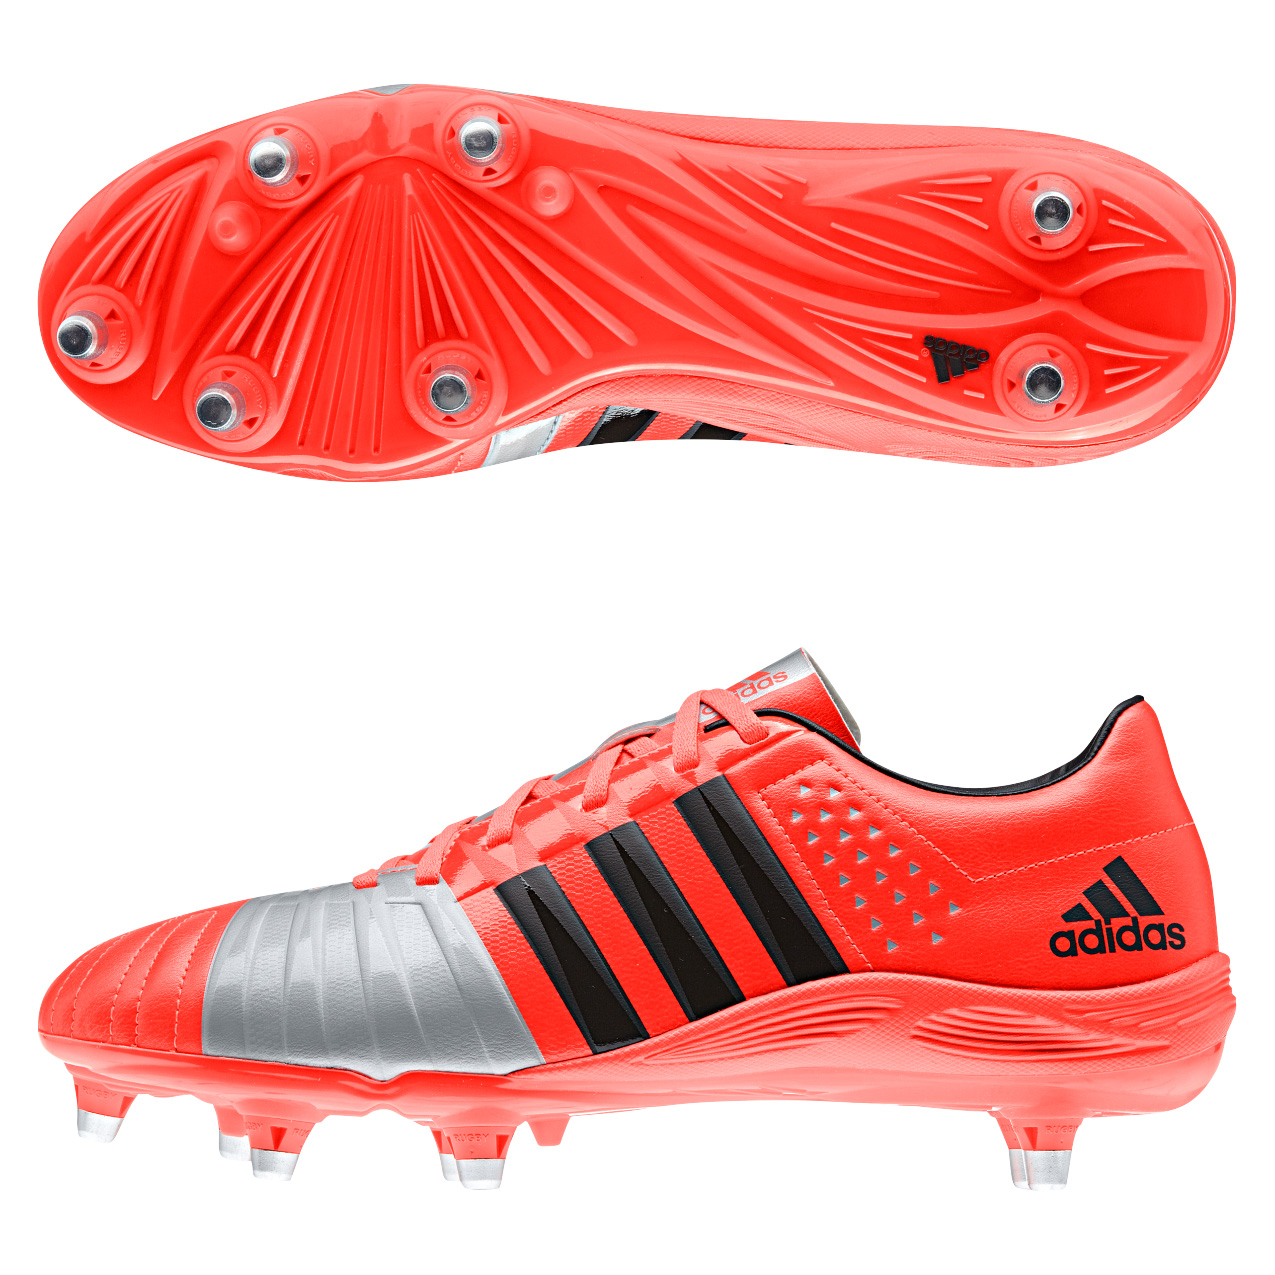 Adidas FF80 2.0 TRX II Soft Ground Rugby Boots Orange